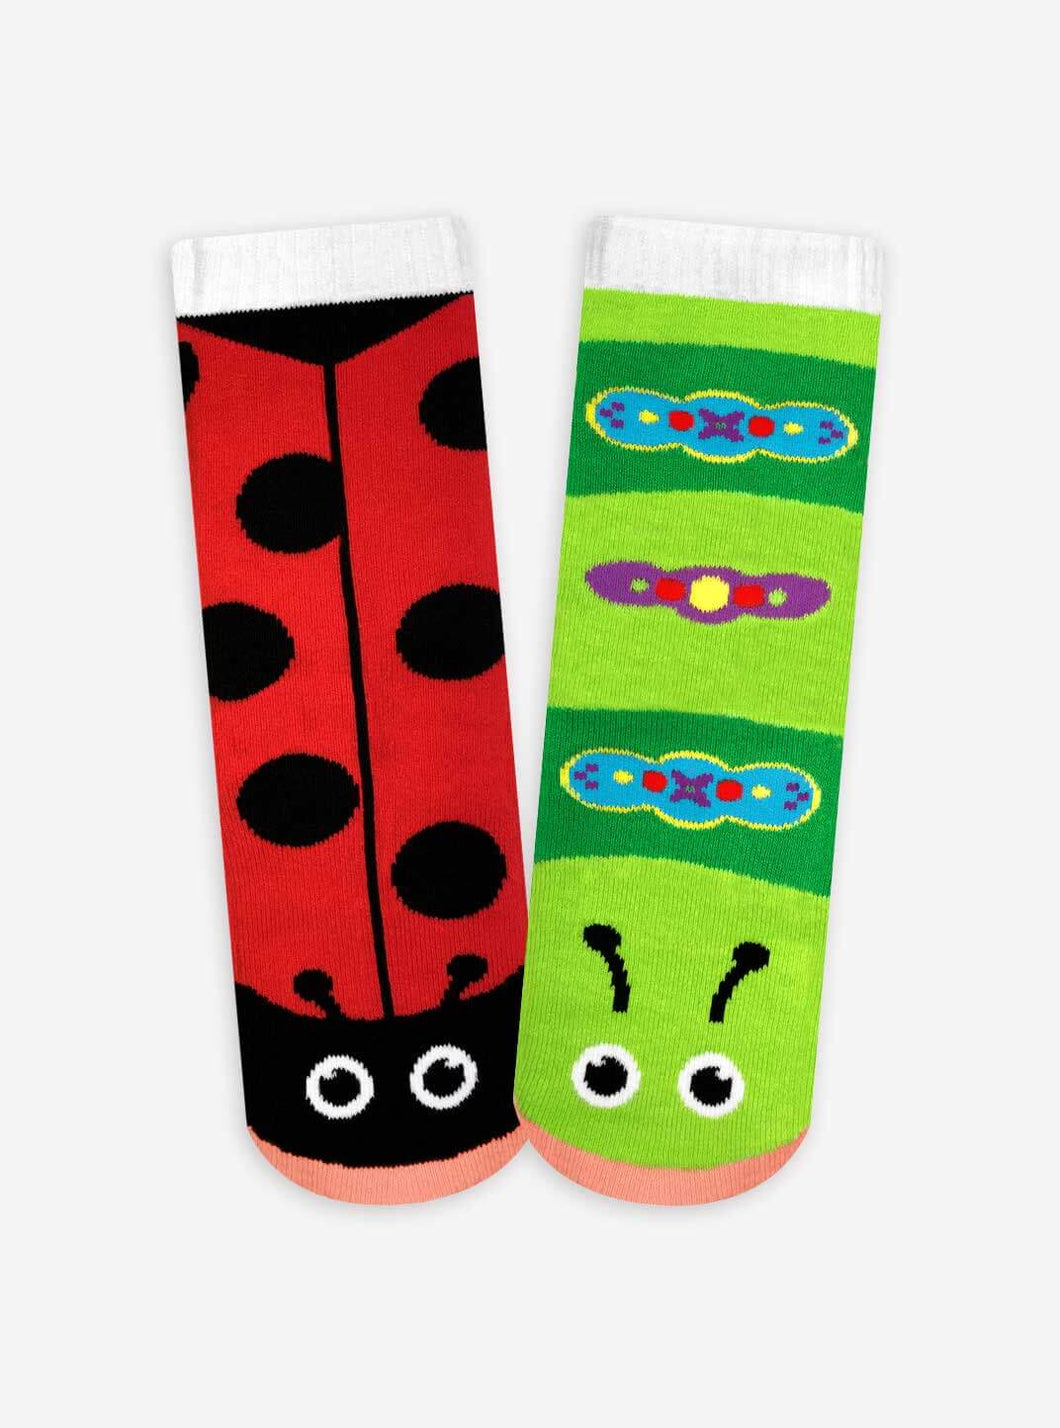 Pals Socks - Ladybug & Caterpillar Kids Collectible Mismatched Bug Socks